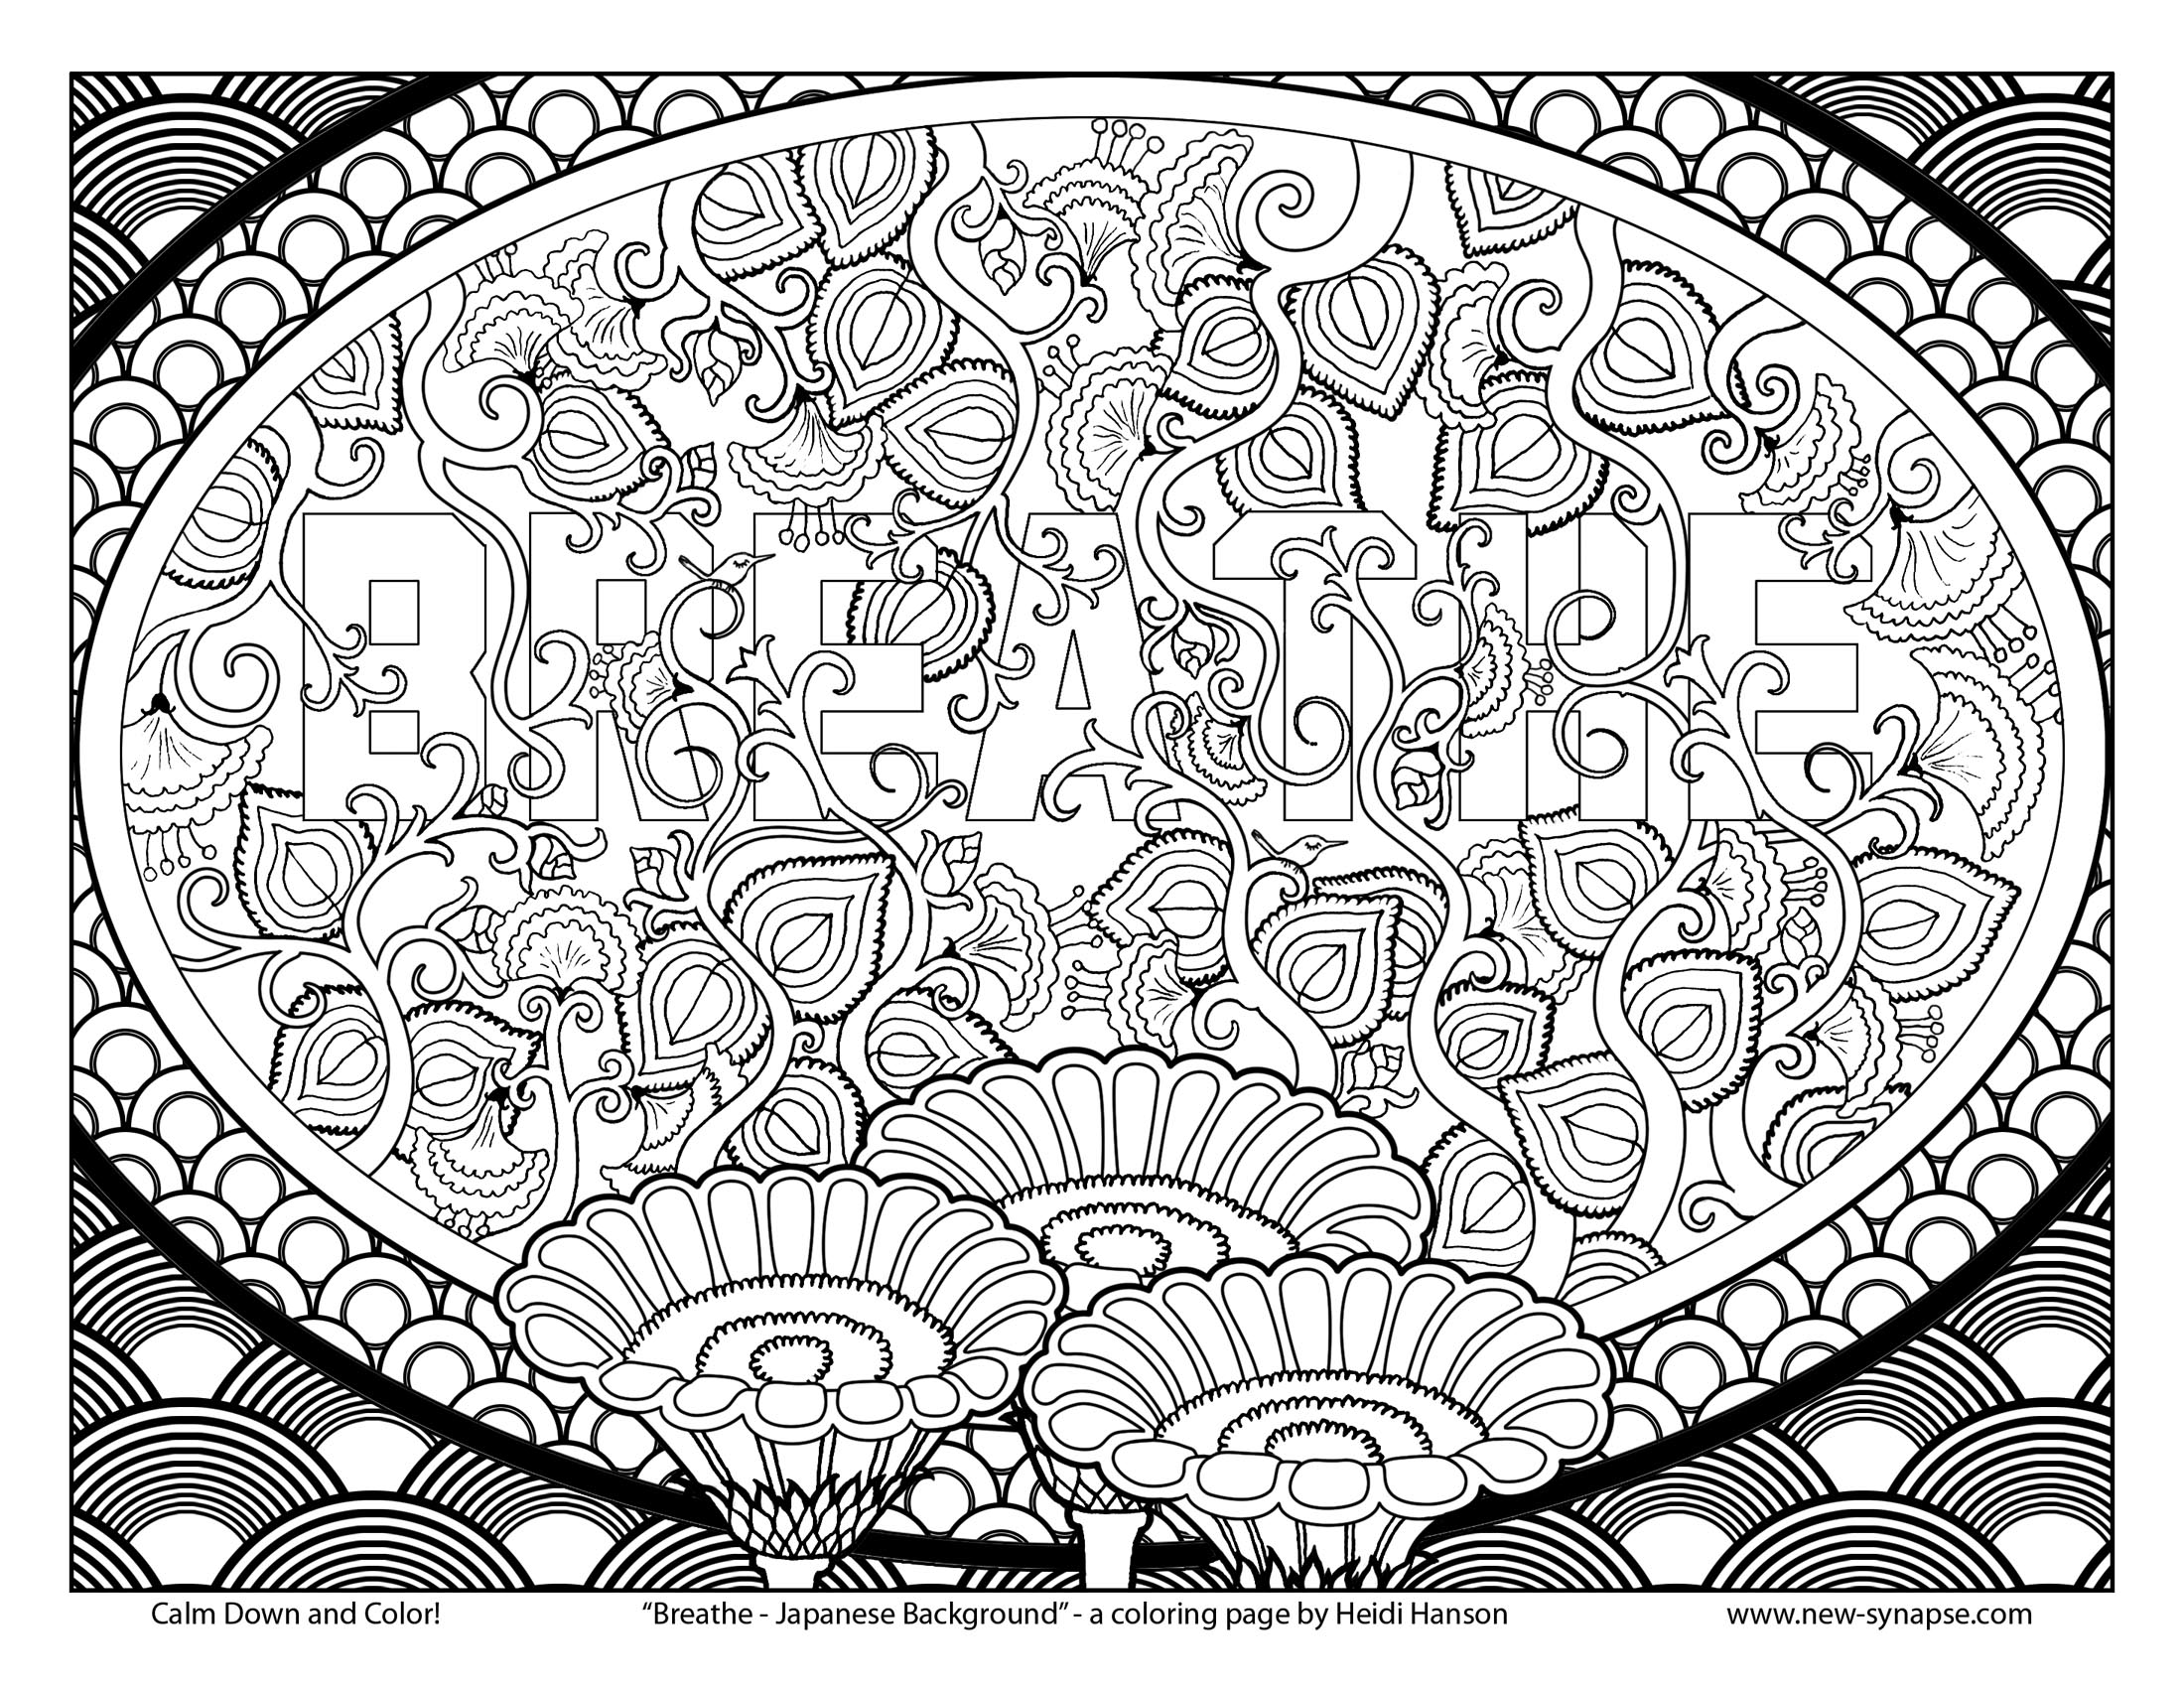 Free Coloring Pages for Relaxing & De stressing – The Art of